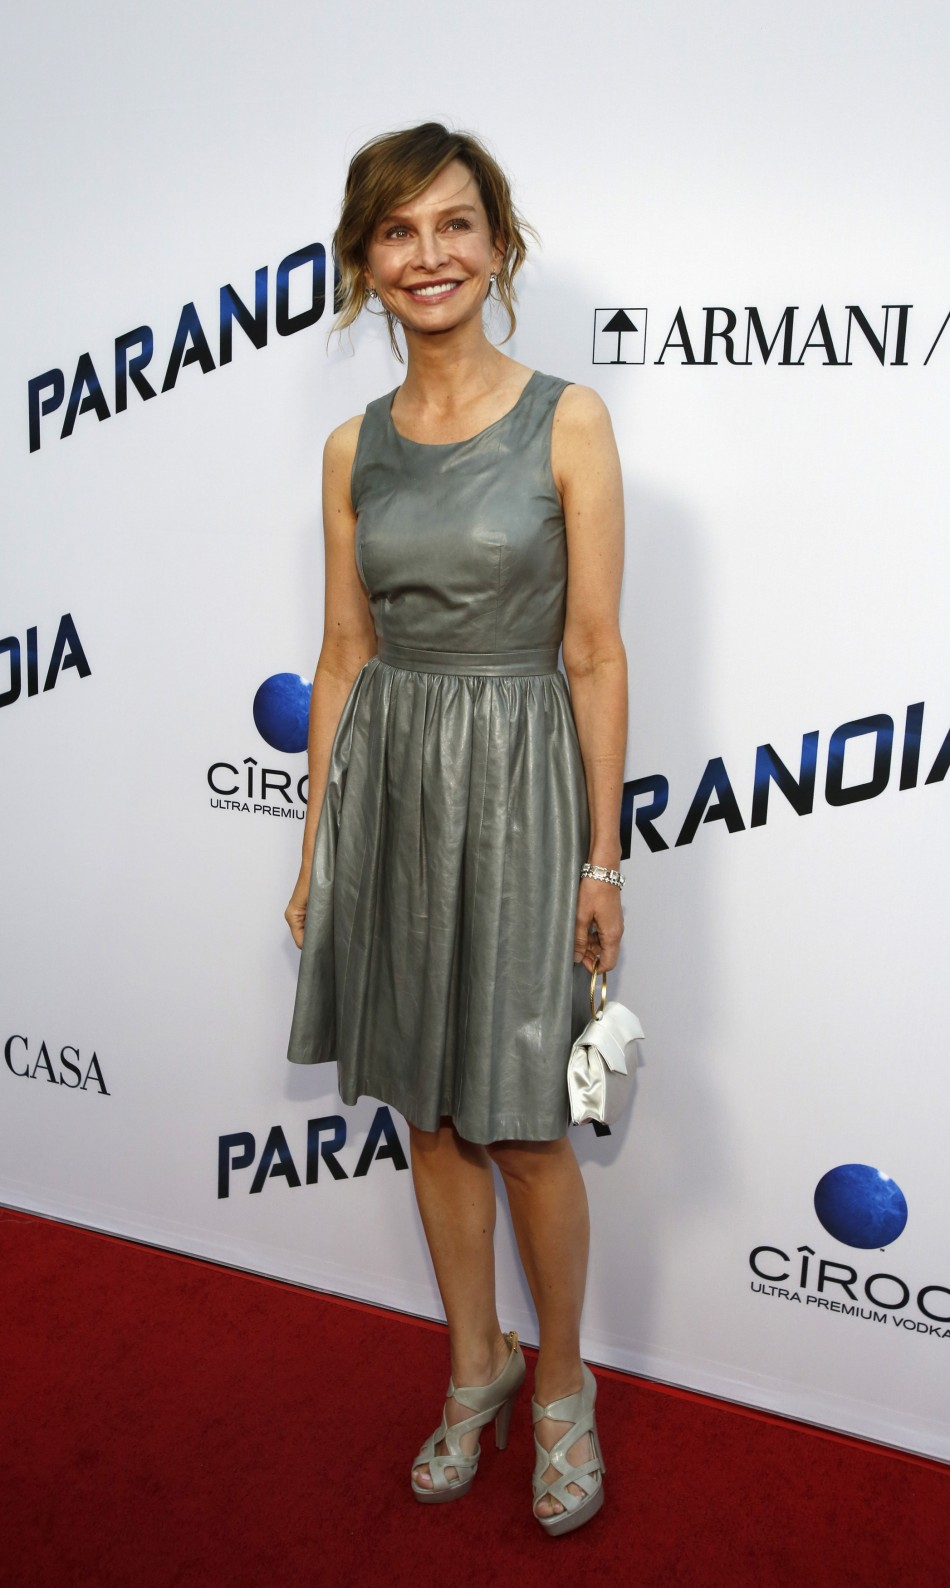 Calista Flockhart poses at the premiere of